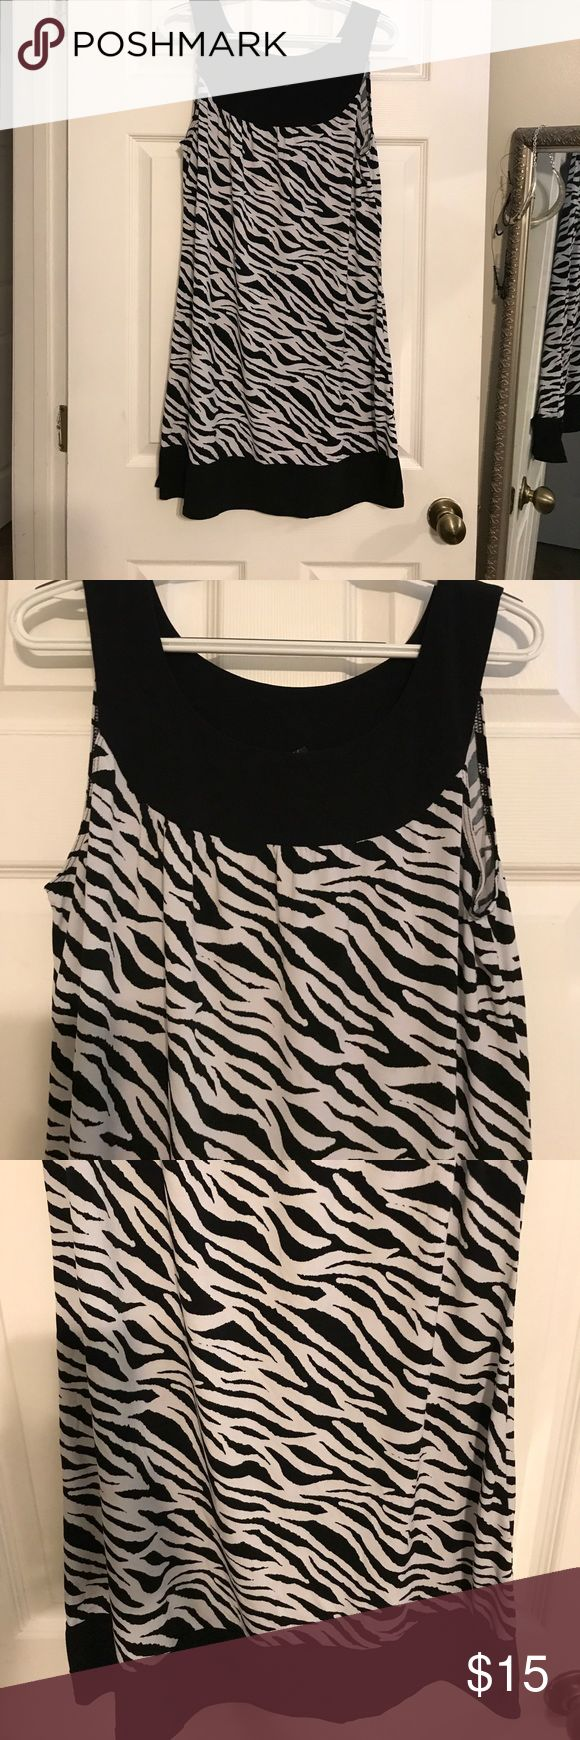 Adorable black and white zebra print dress This adorable black and white zebra print dress is sleeveless very soft and silky size extra-large good used condition wrapper Dresses Midi